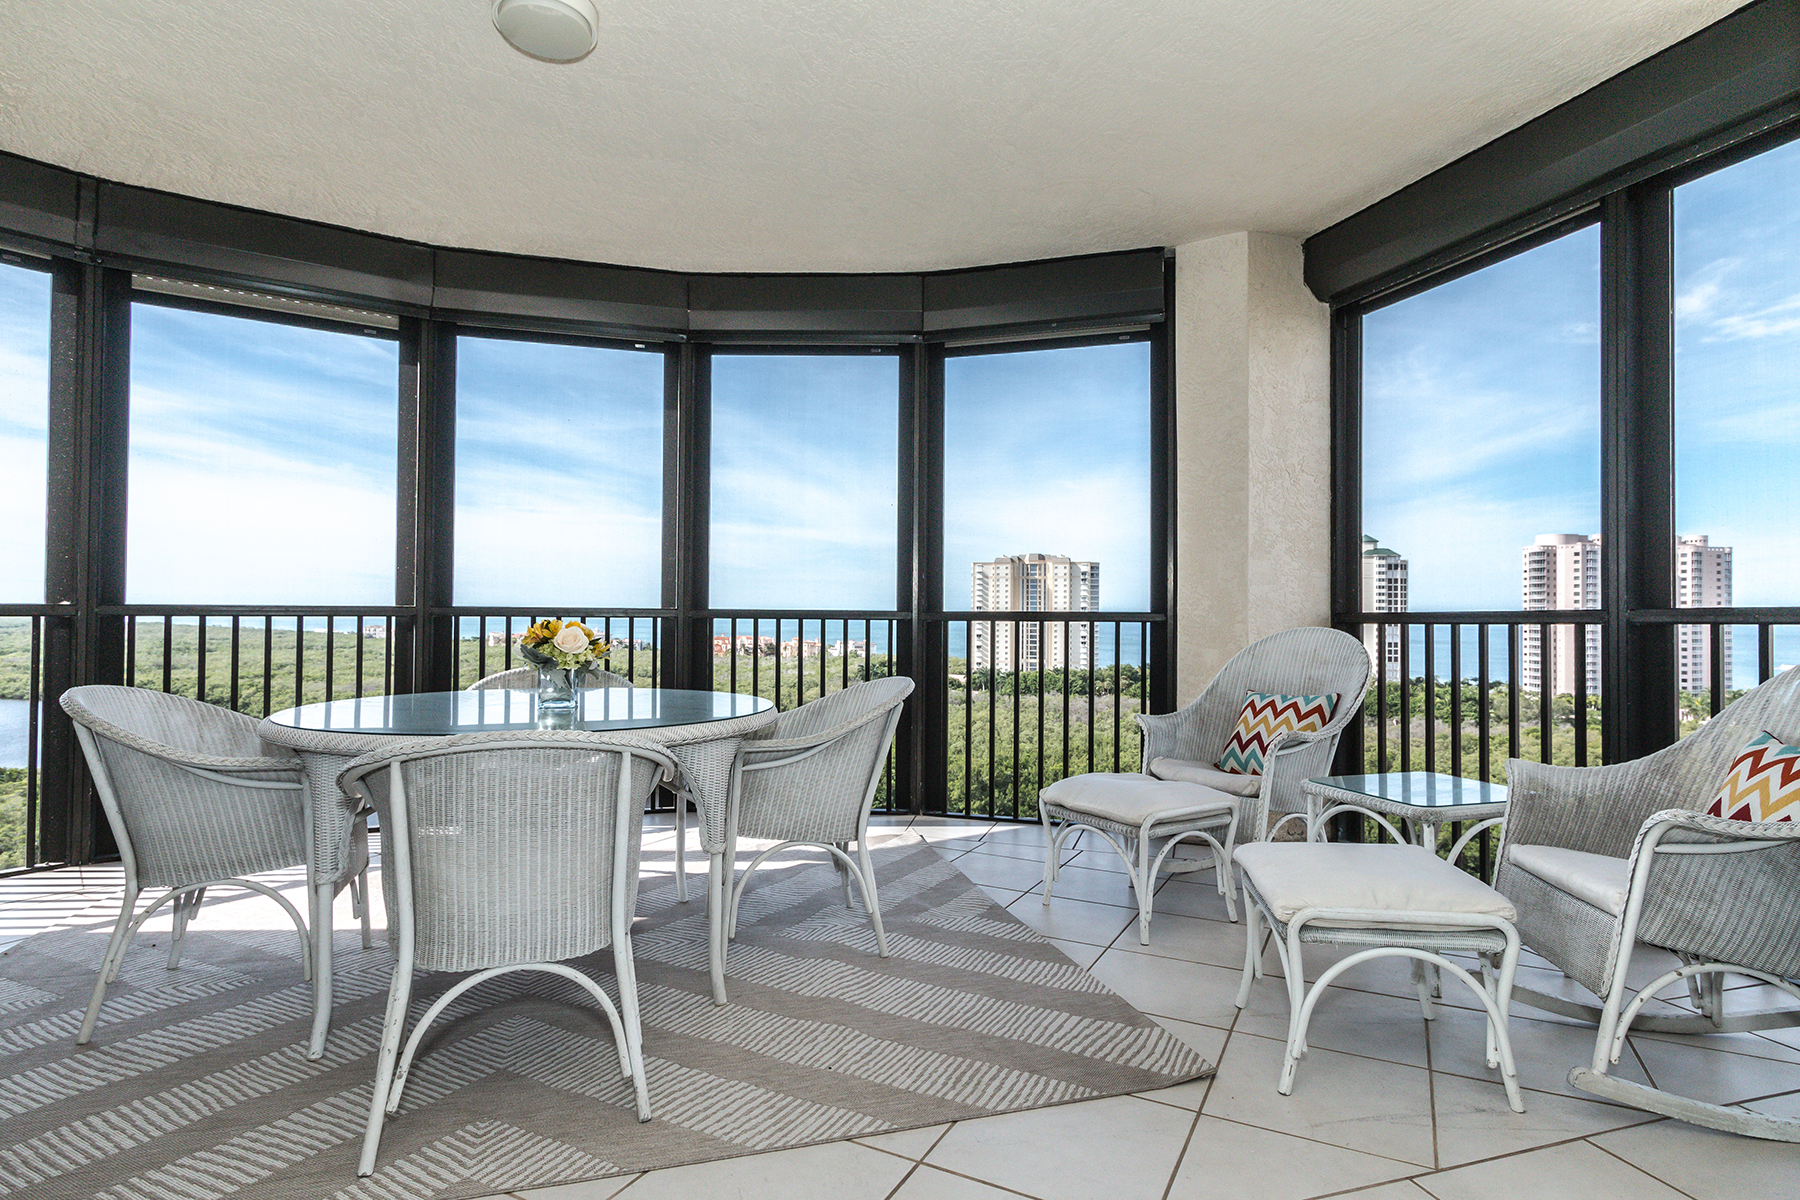 Condominium for Rent at PELICAN BAY-MARQUESA AT BAY COLONY 8990 Bay Colony Dr 1203, Naples, Florida 34108 United States